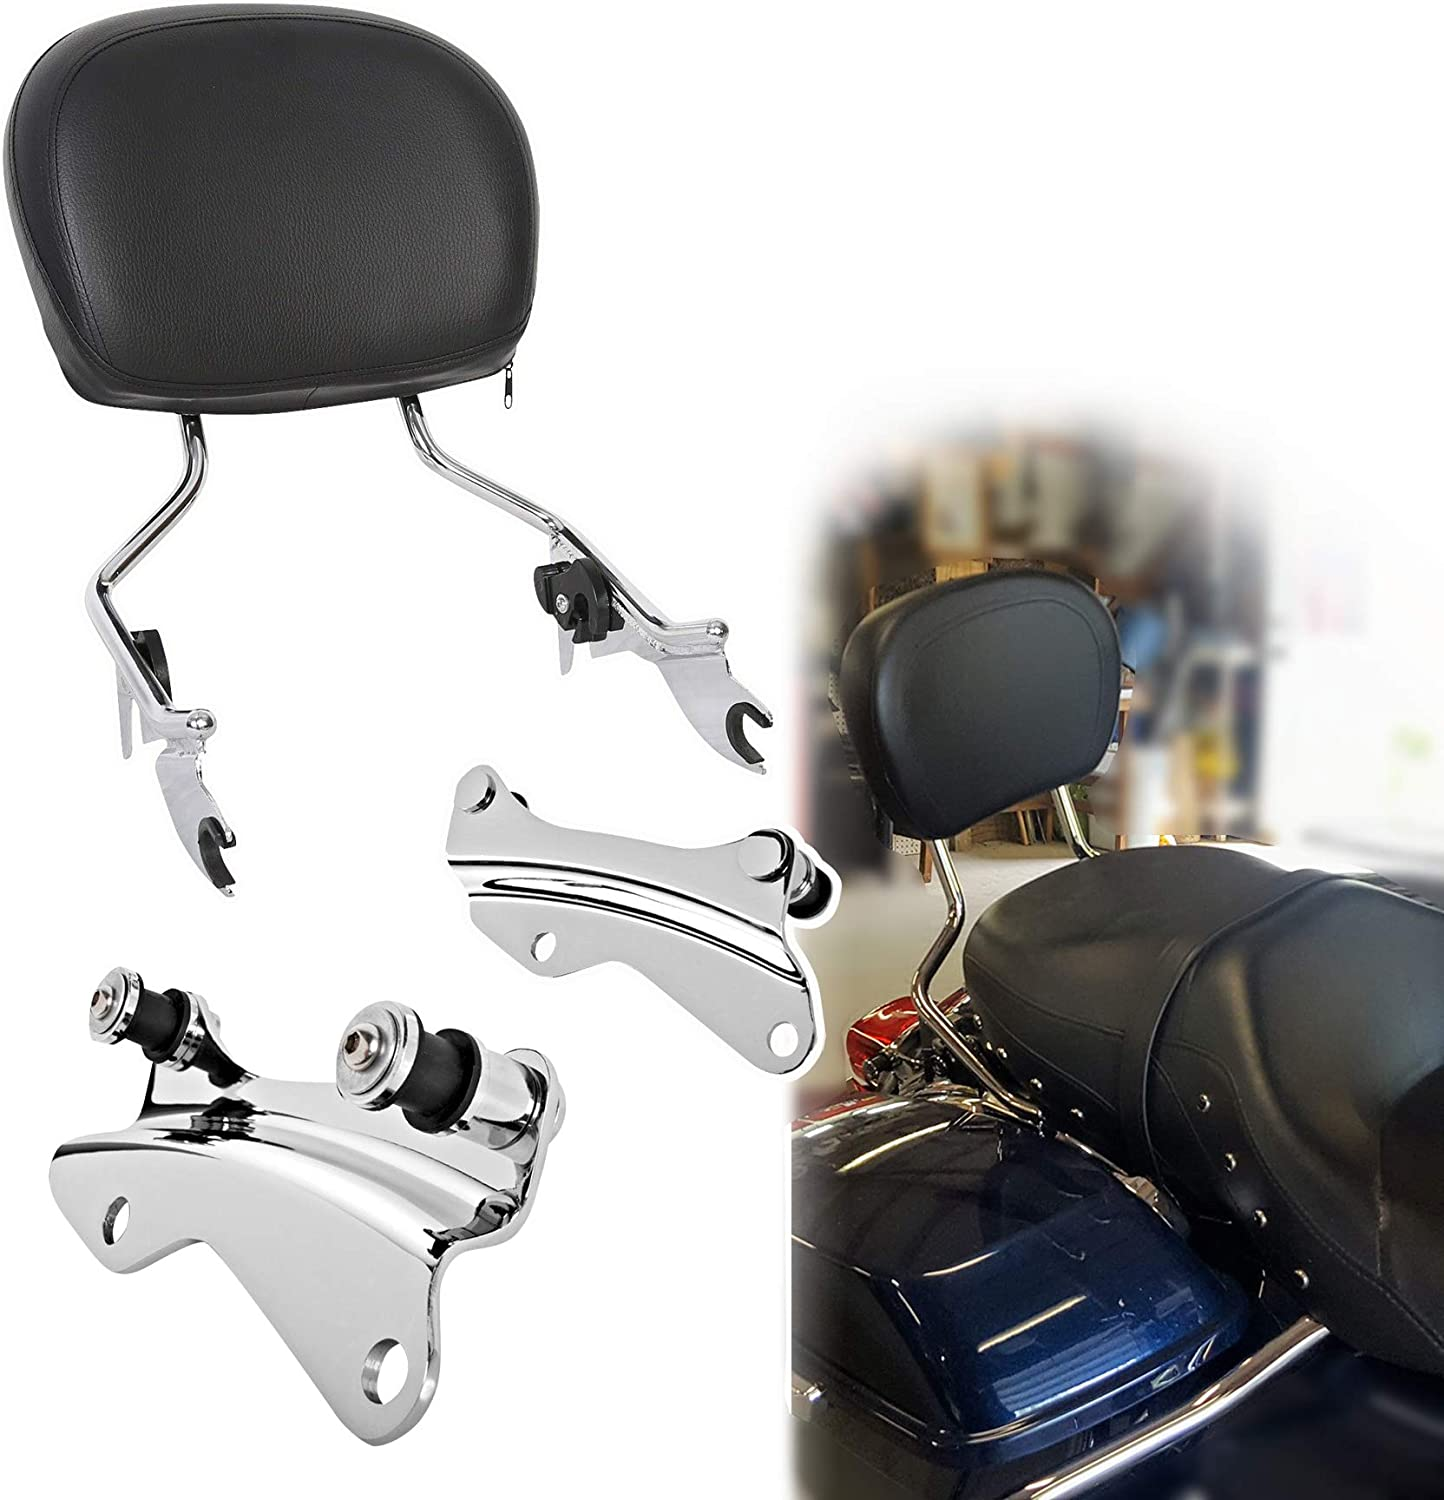 Road King FLHR CVO FLHXSE FLTRXSE Road Glide FLTRX Electra Glide FLHT FLHRXS Fits 14-20 Touring Chrome Detachables Sissy Bar Upright And 4-point Docking Hardware Kit For Street Glide FLHX